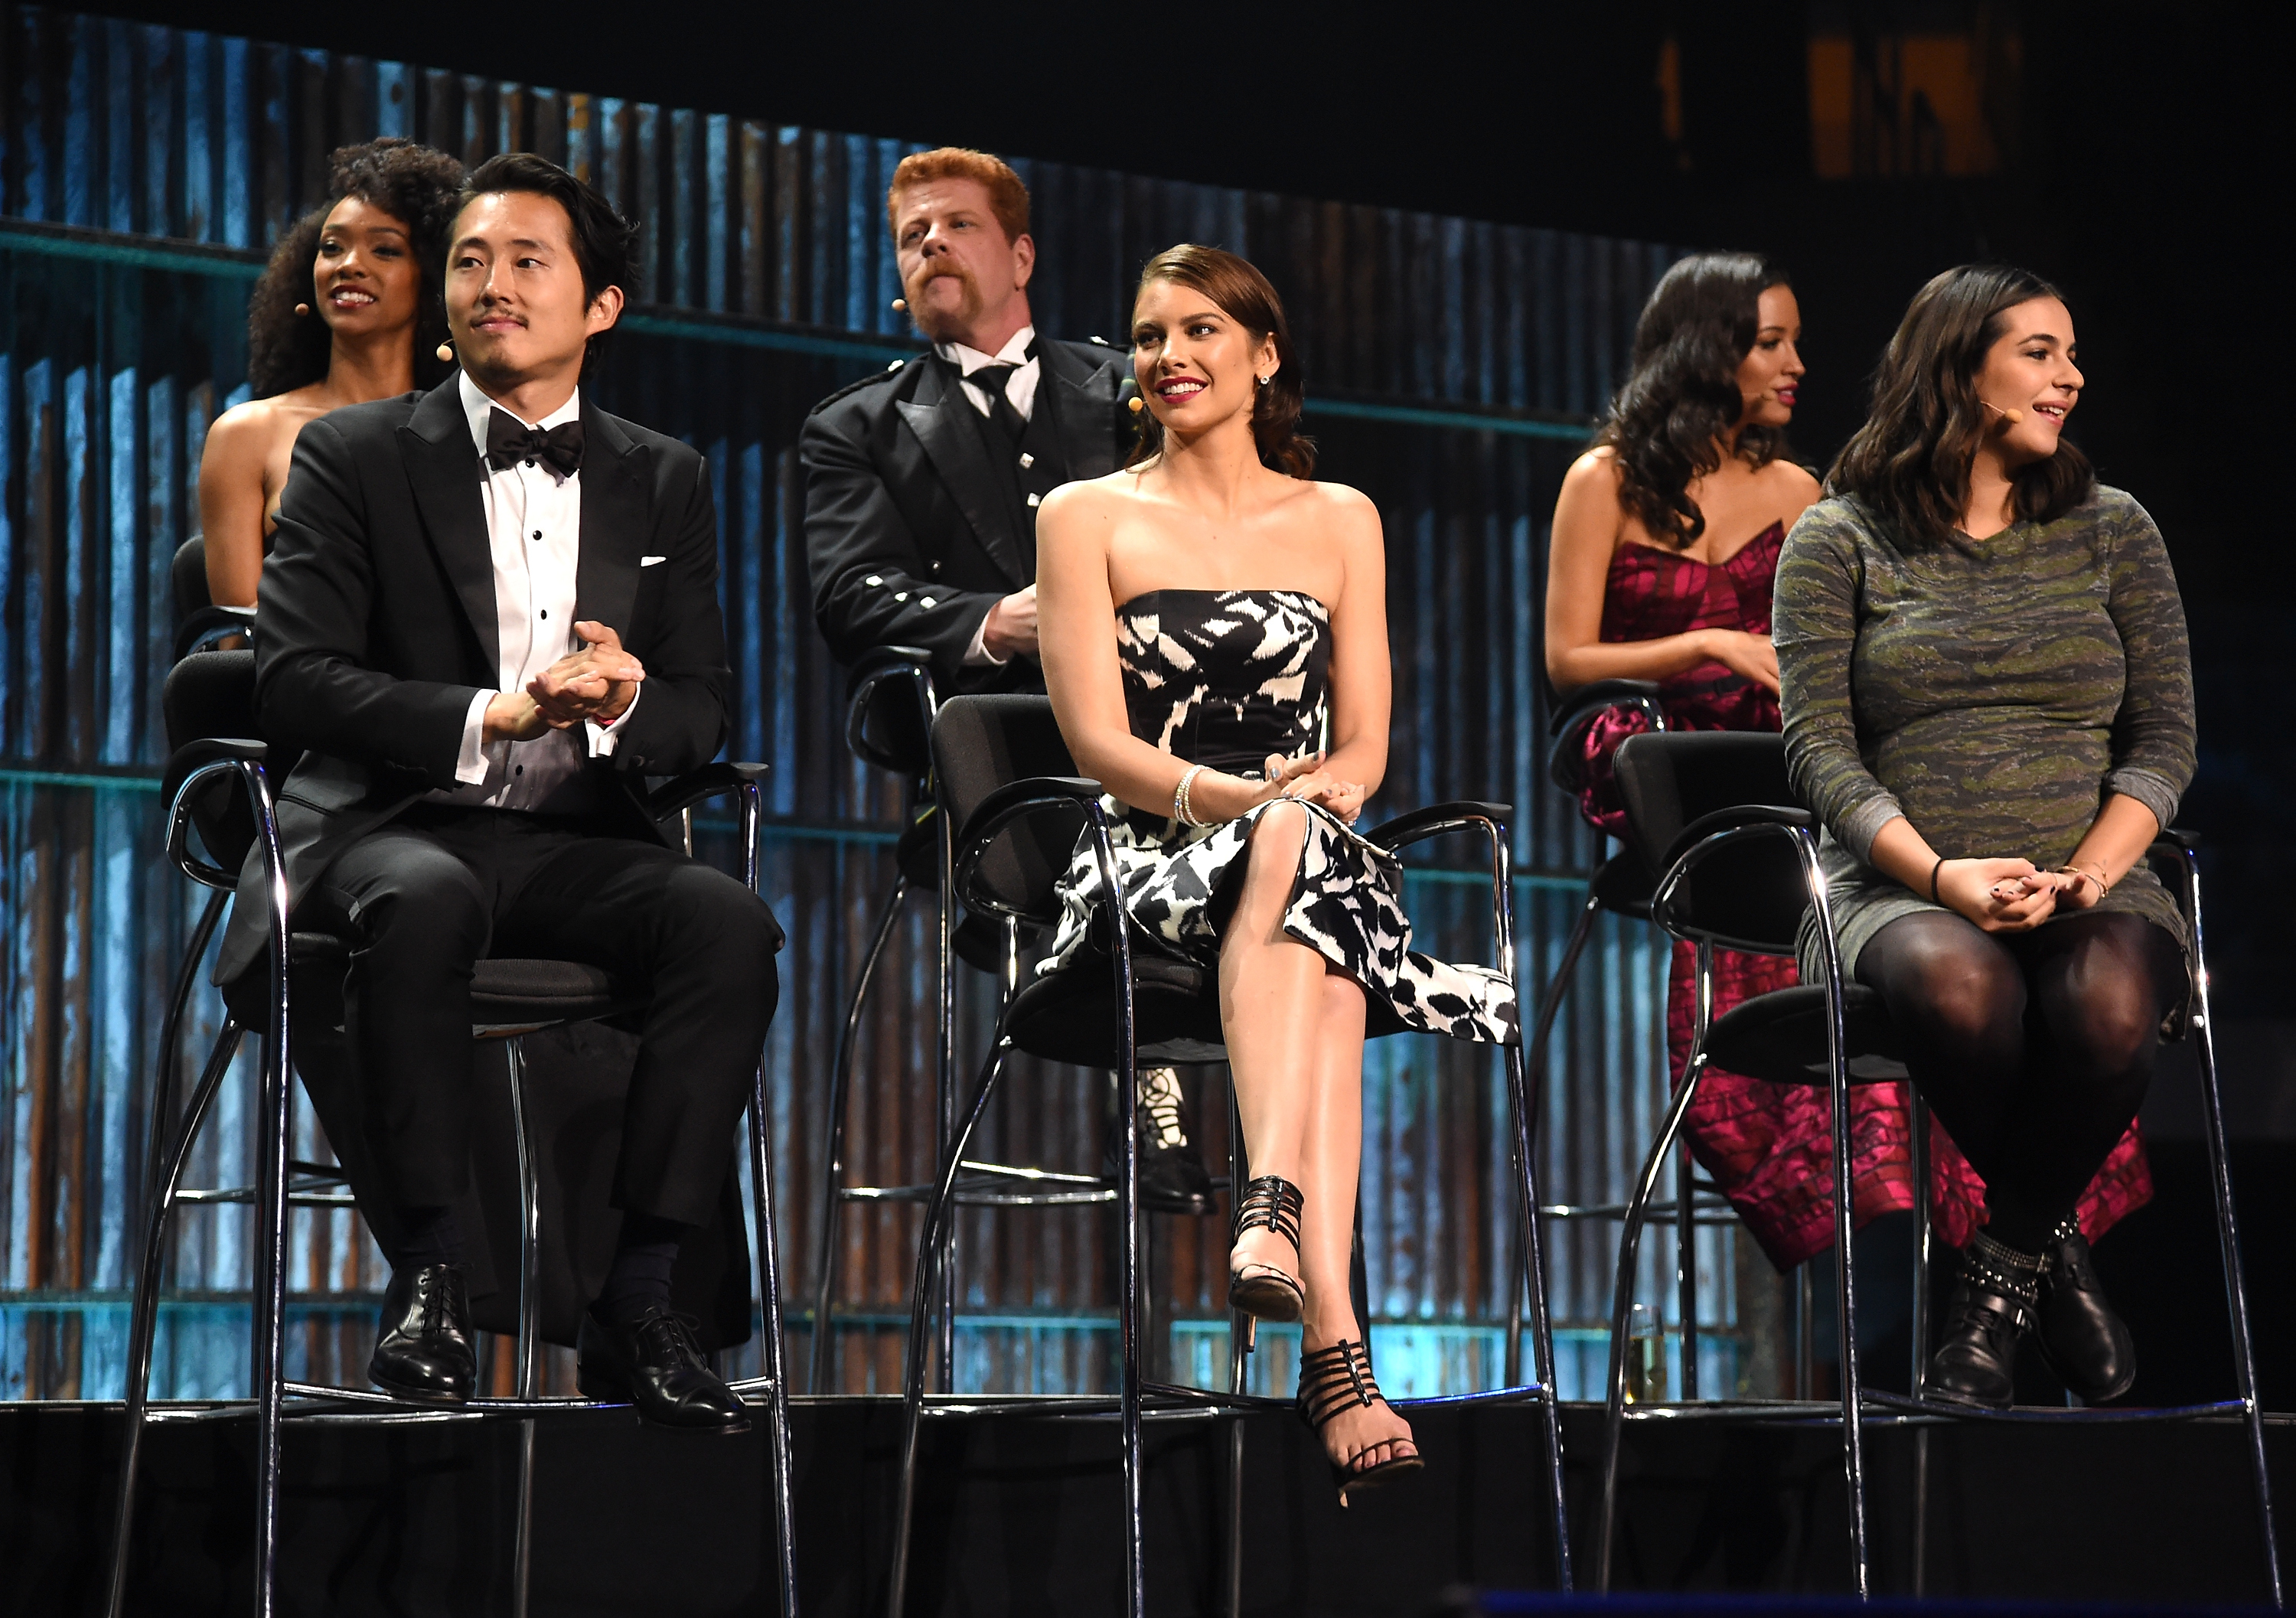 Steven Yeun, Sonequa Martin, Michael Cudlitz, Lauren Cohan, Christian Serratos and Alanna Masterson speak at the AMC's  The Walking Dead  Season 6 Fan Premiere Event Oct. 9, 2015 in New York City.